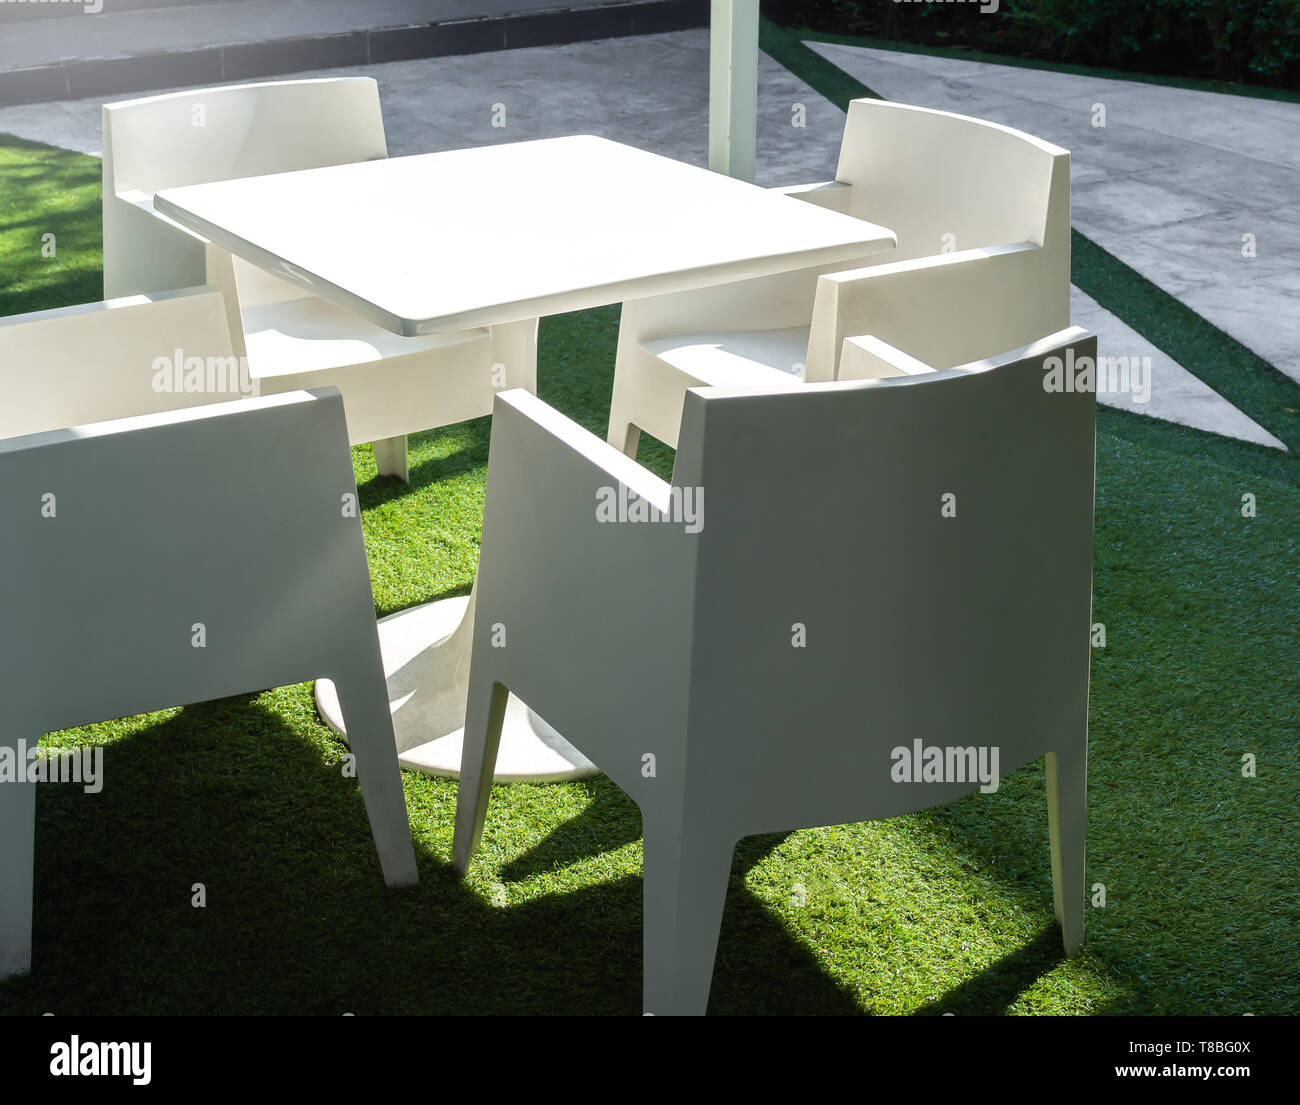 Fantastic White Modern Garden Dining Table And Four Chairs On Green Evergreenethics Interior Chair Design Evergreenethicsorg